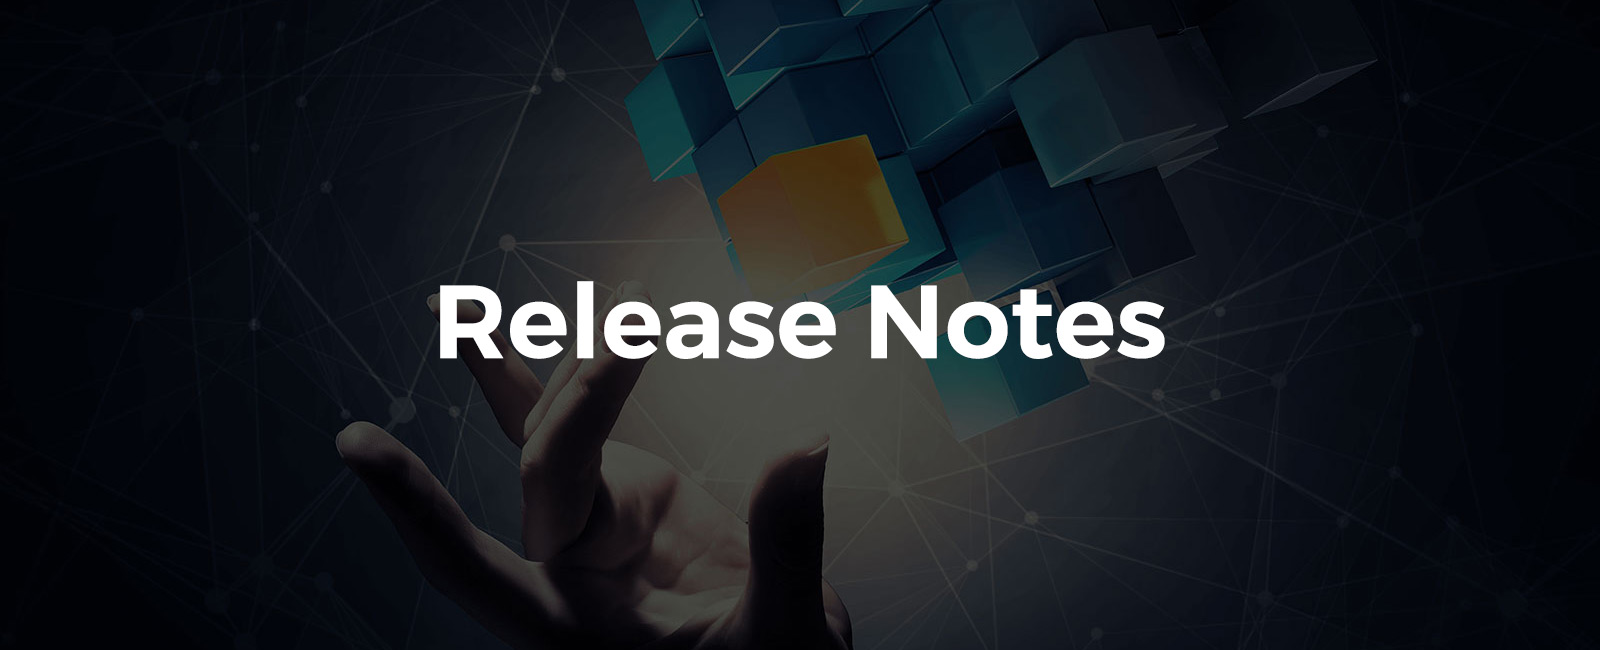 Release Notes   VNClagoon